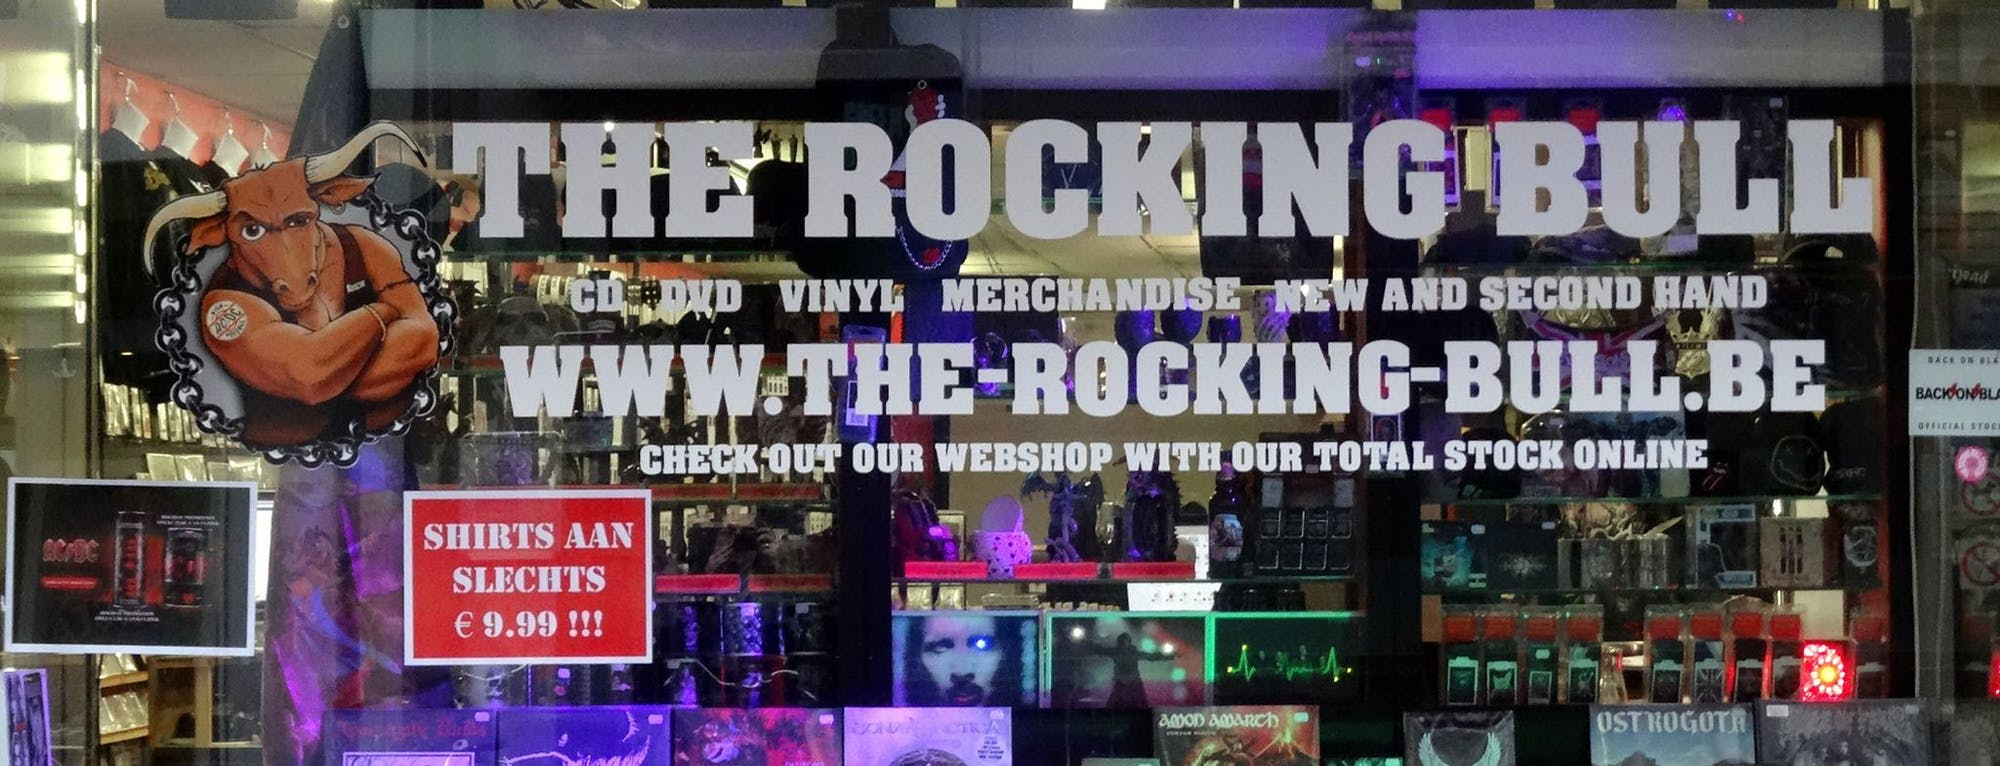 The Rocking Bull - Record Store Image